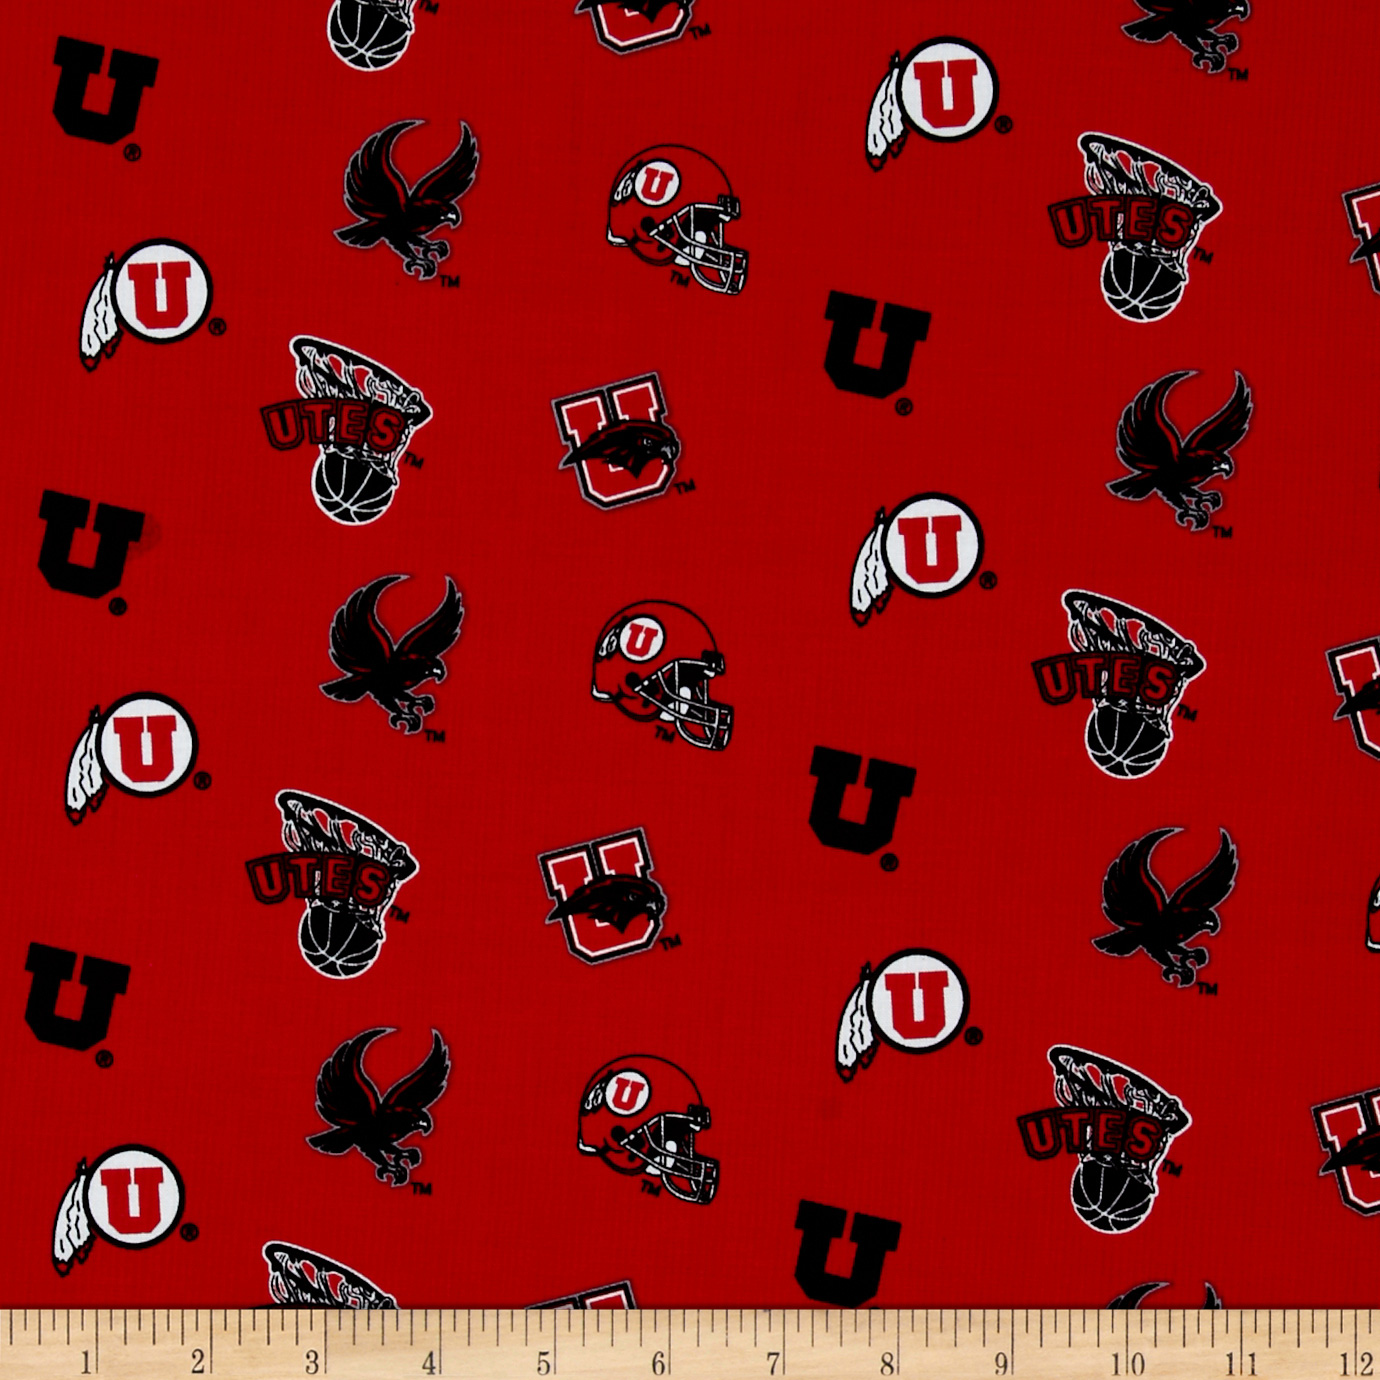 Collegiate Cotton Broadcloth University of Utah Fabric